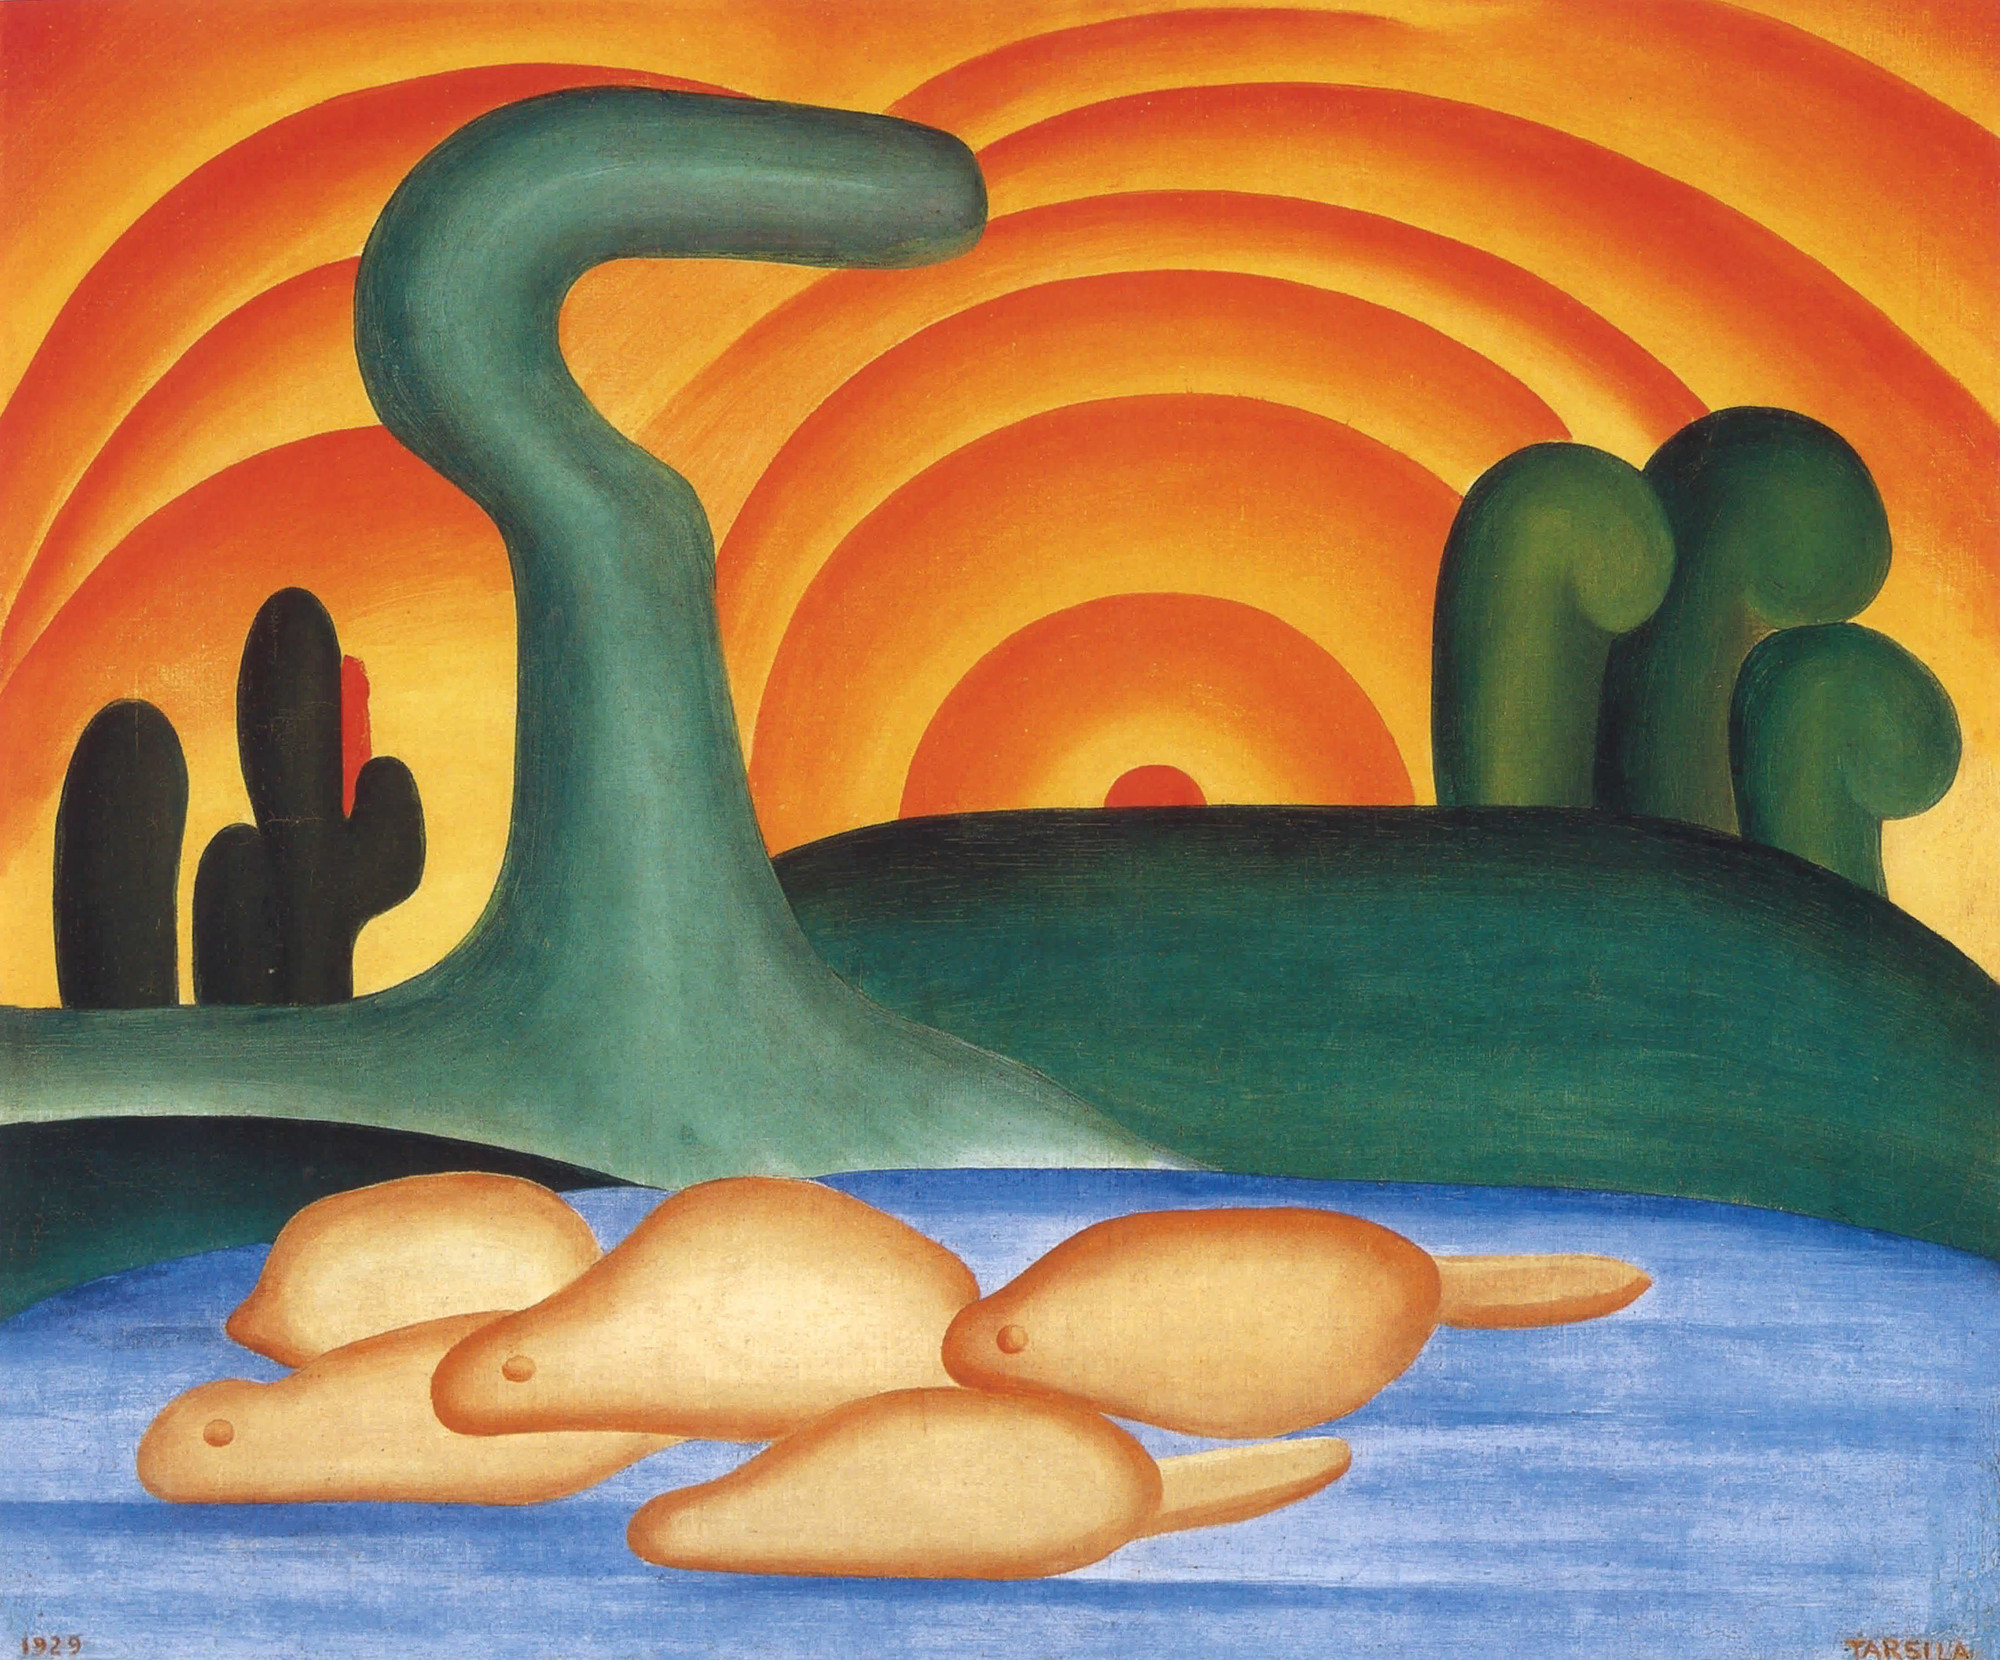 "Tarsila do Amaral. Setting Sun. 1929. Oil on canvas, 21 1/4 × 25 9/16"" (54 × 65 cm). Private collection, Rio de Janeiro. © Tarsila do Amaral Licenciamentos"